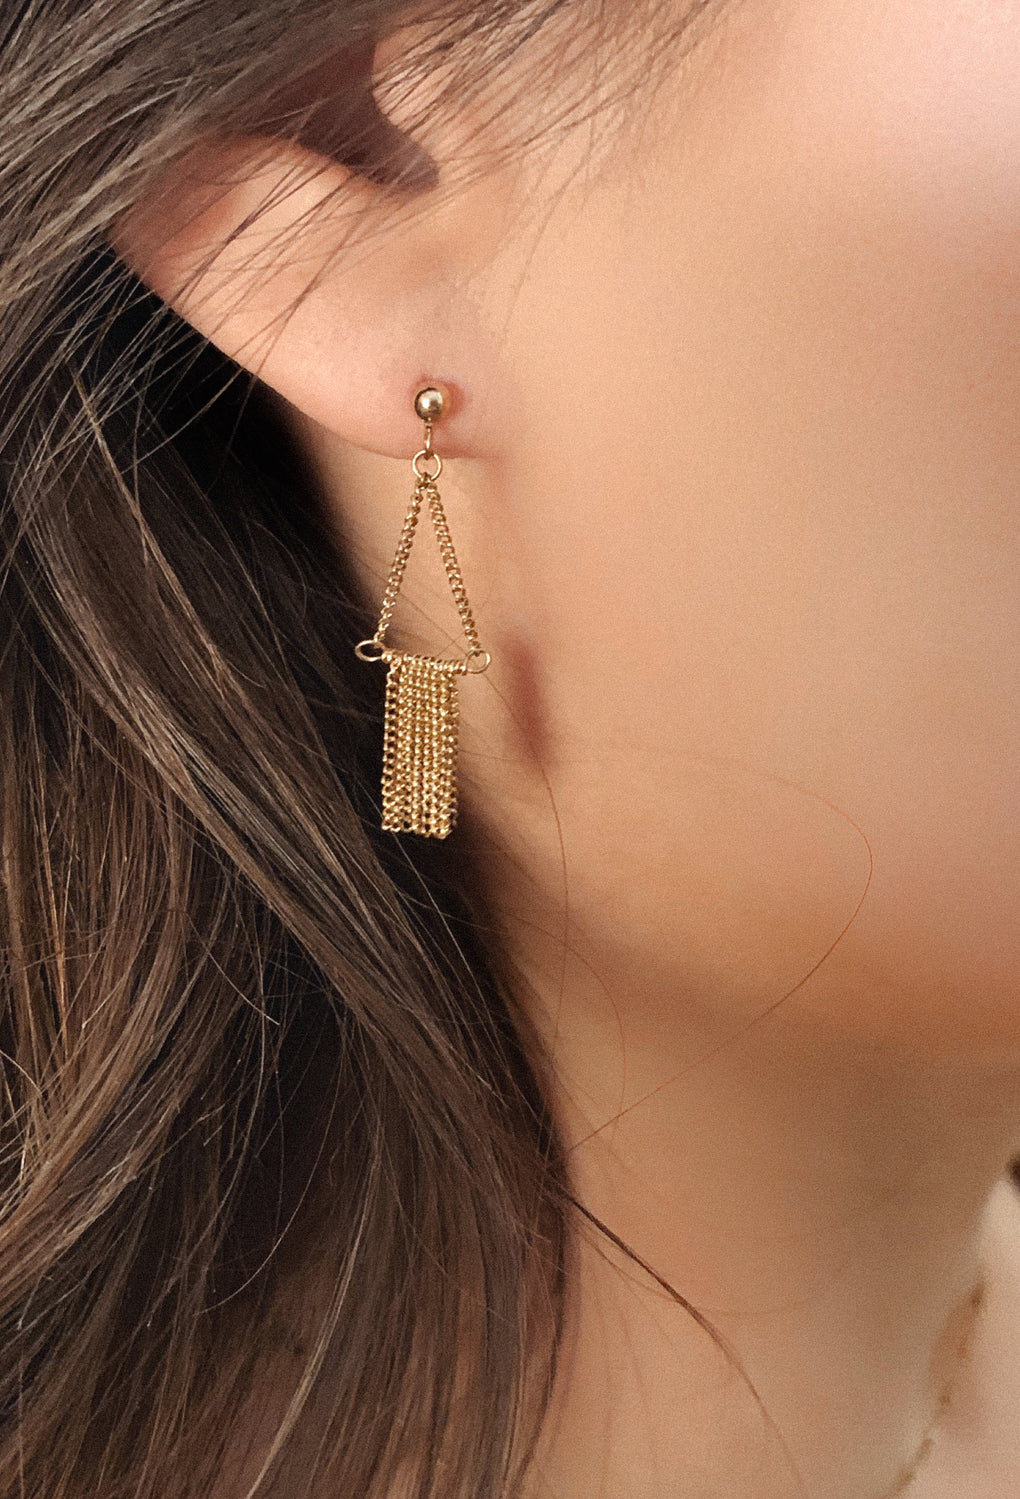 Kiss Earrings